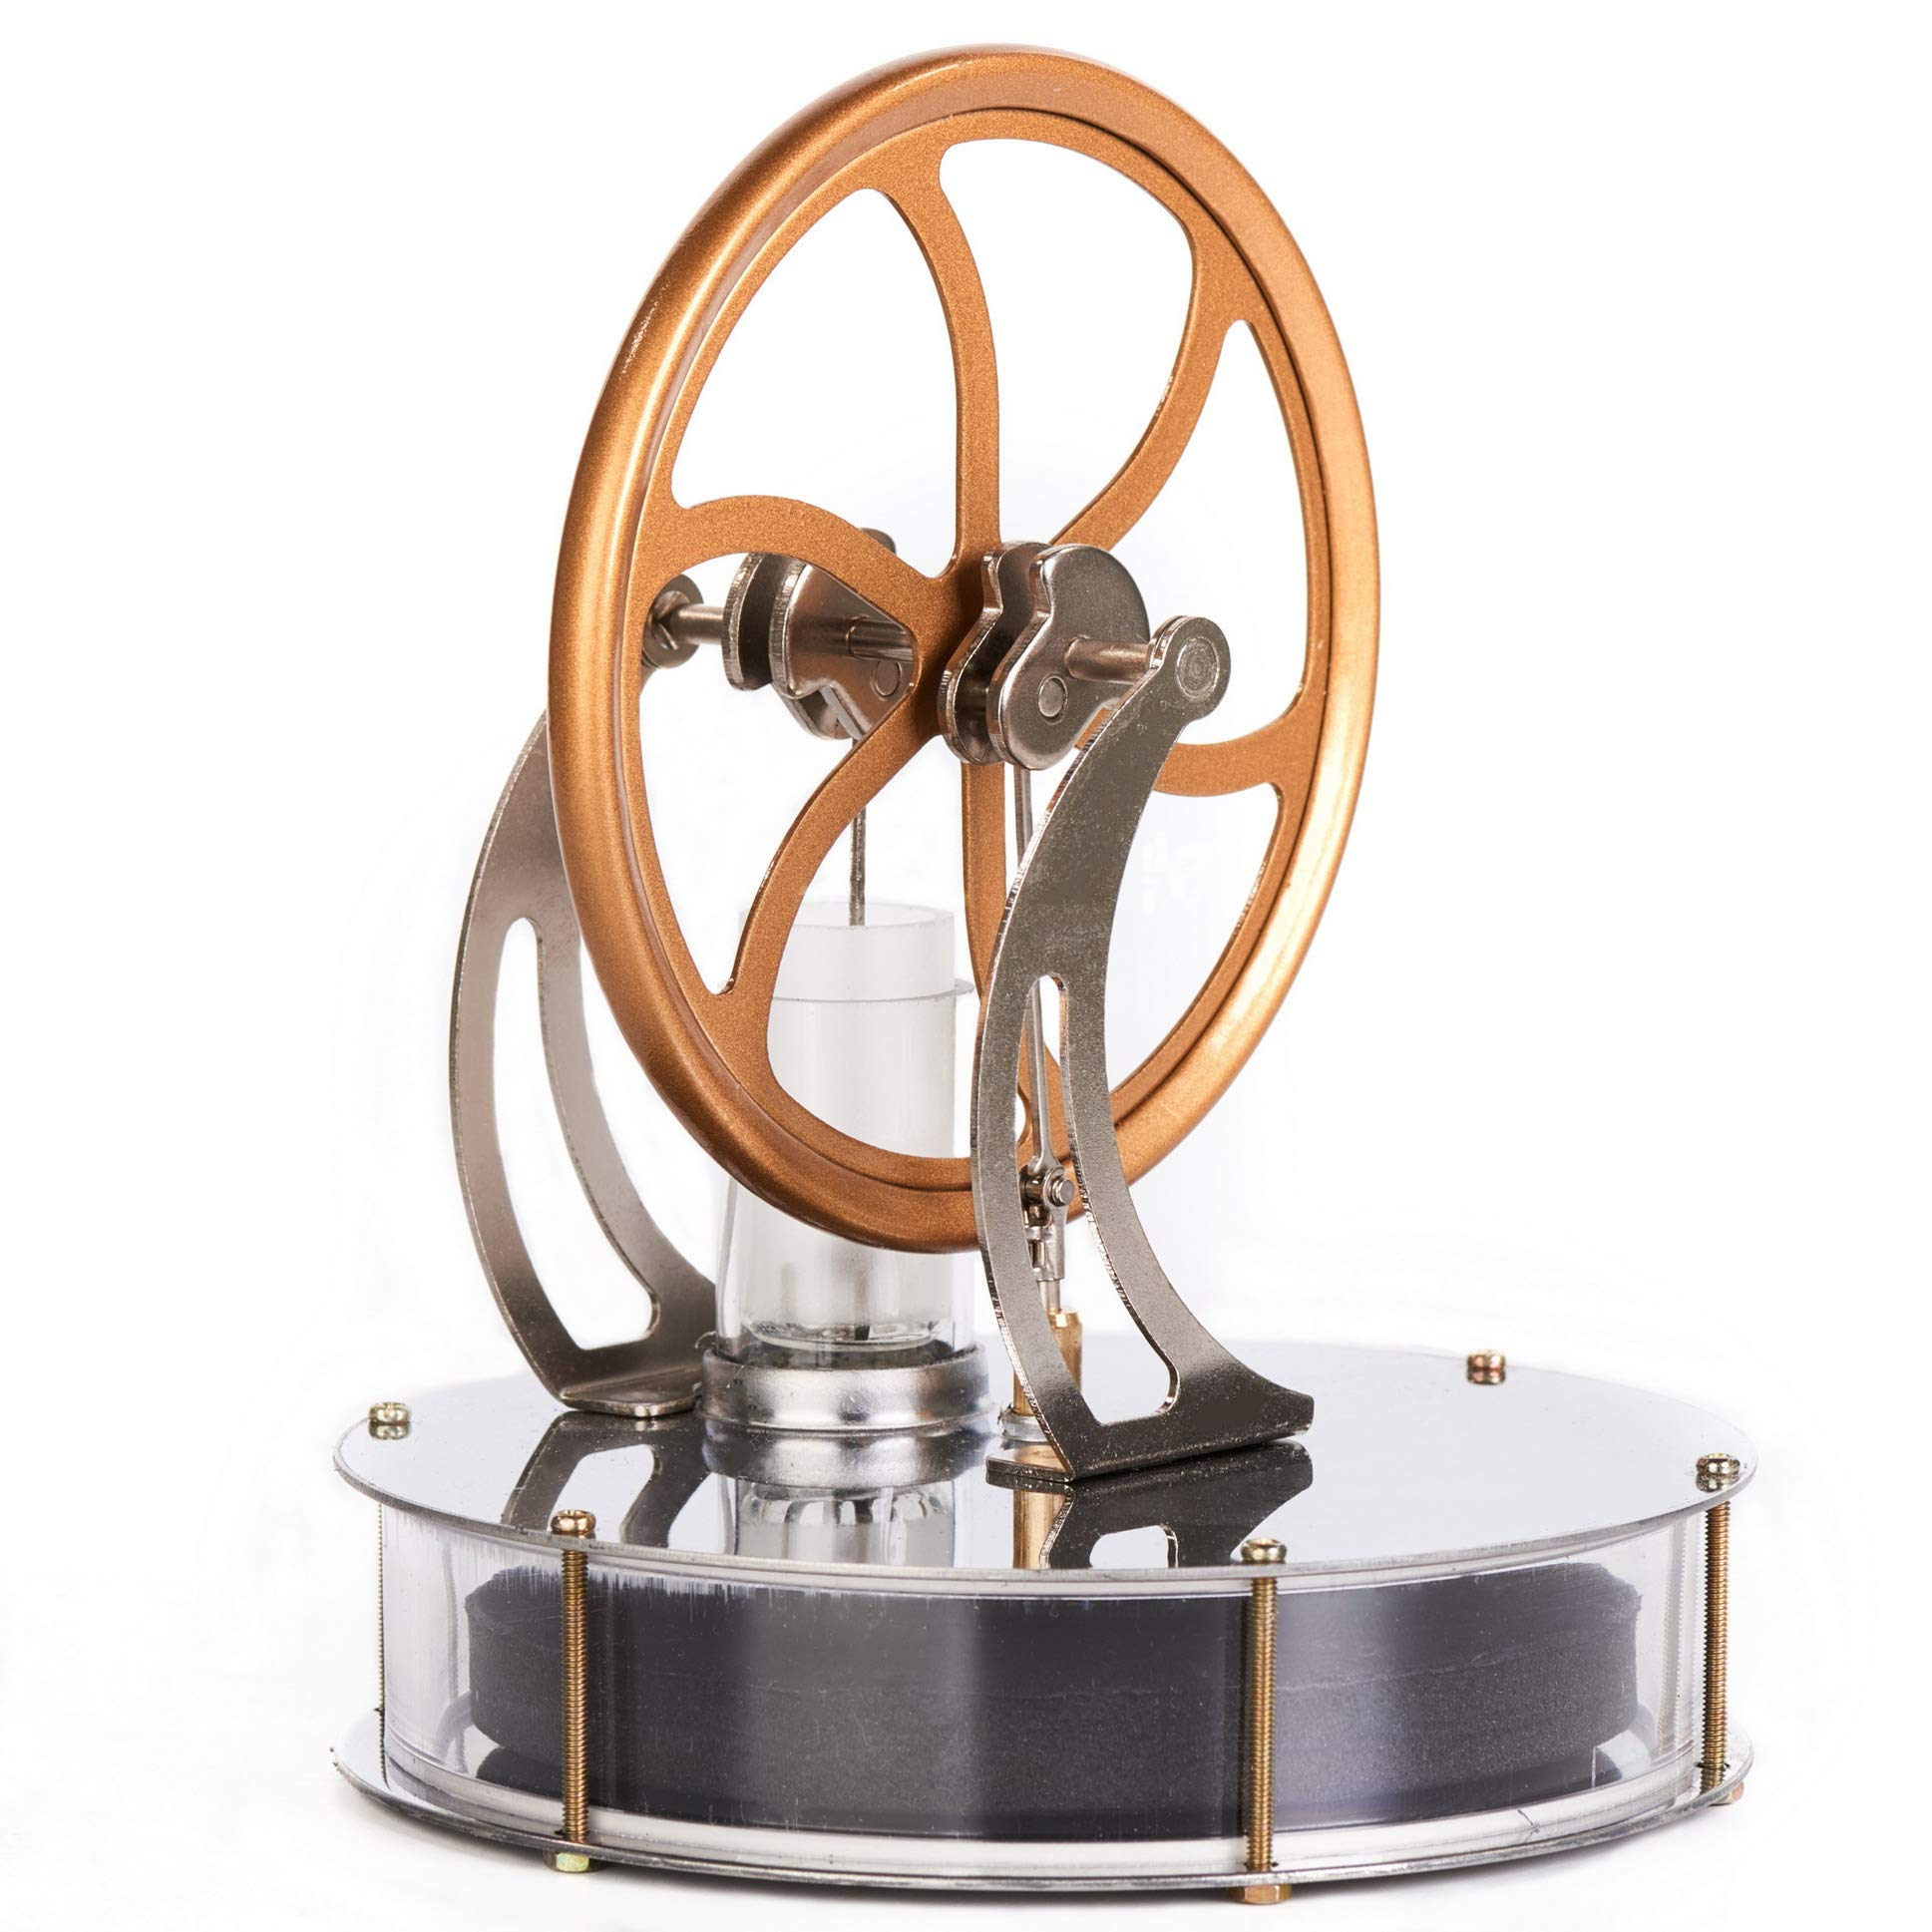 Sunnytech Low Temperature Stirling Engine Motor Steam Heat Education Model Toy Kit (LT001) by Sunnytech (Image #2)